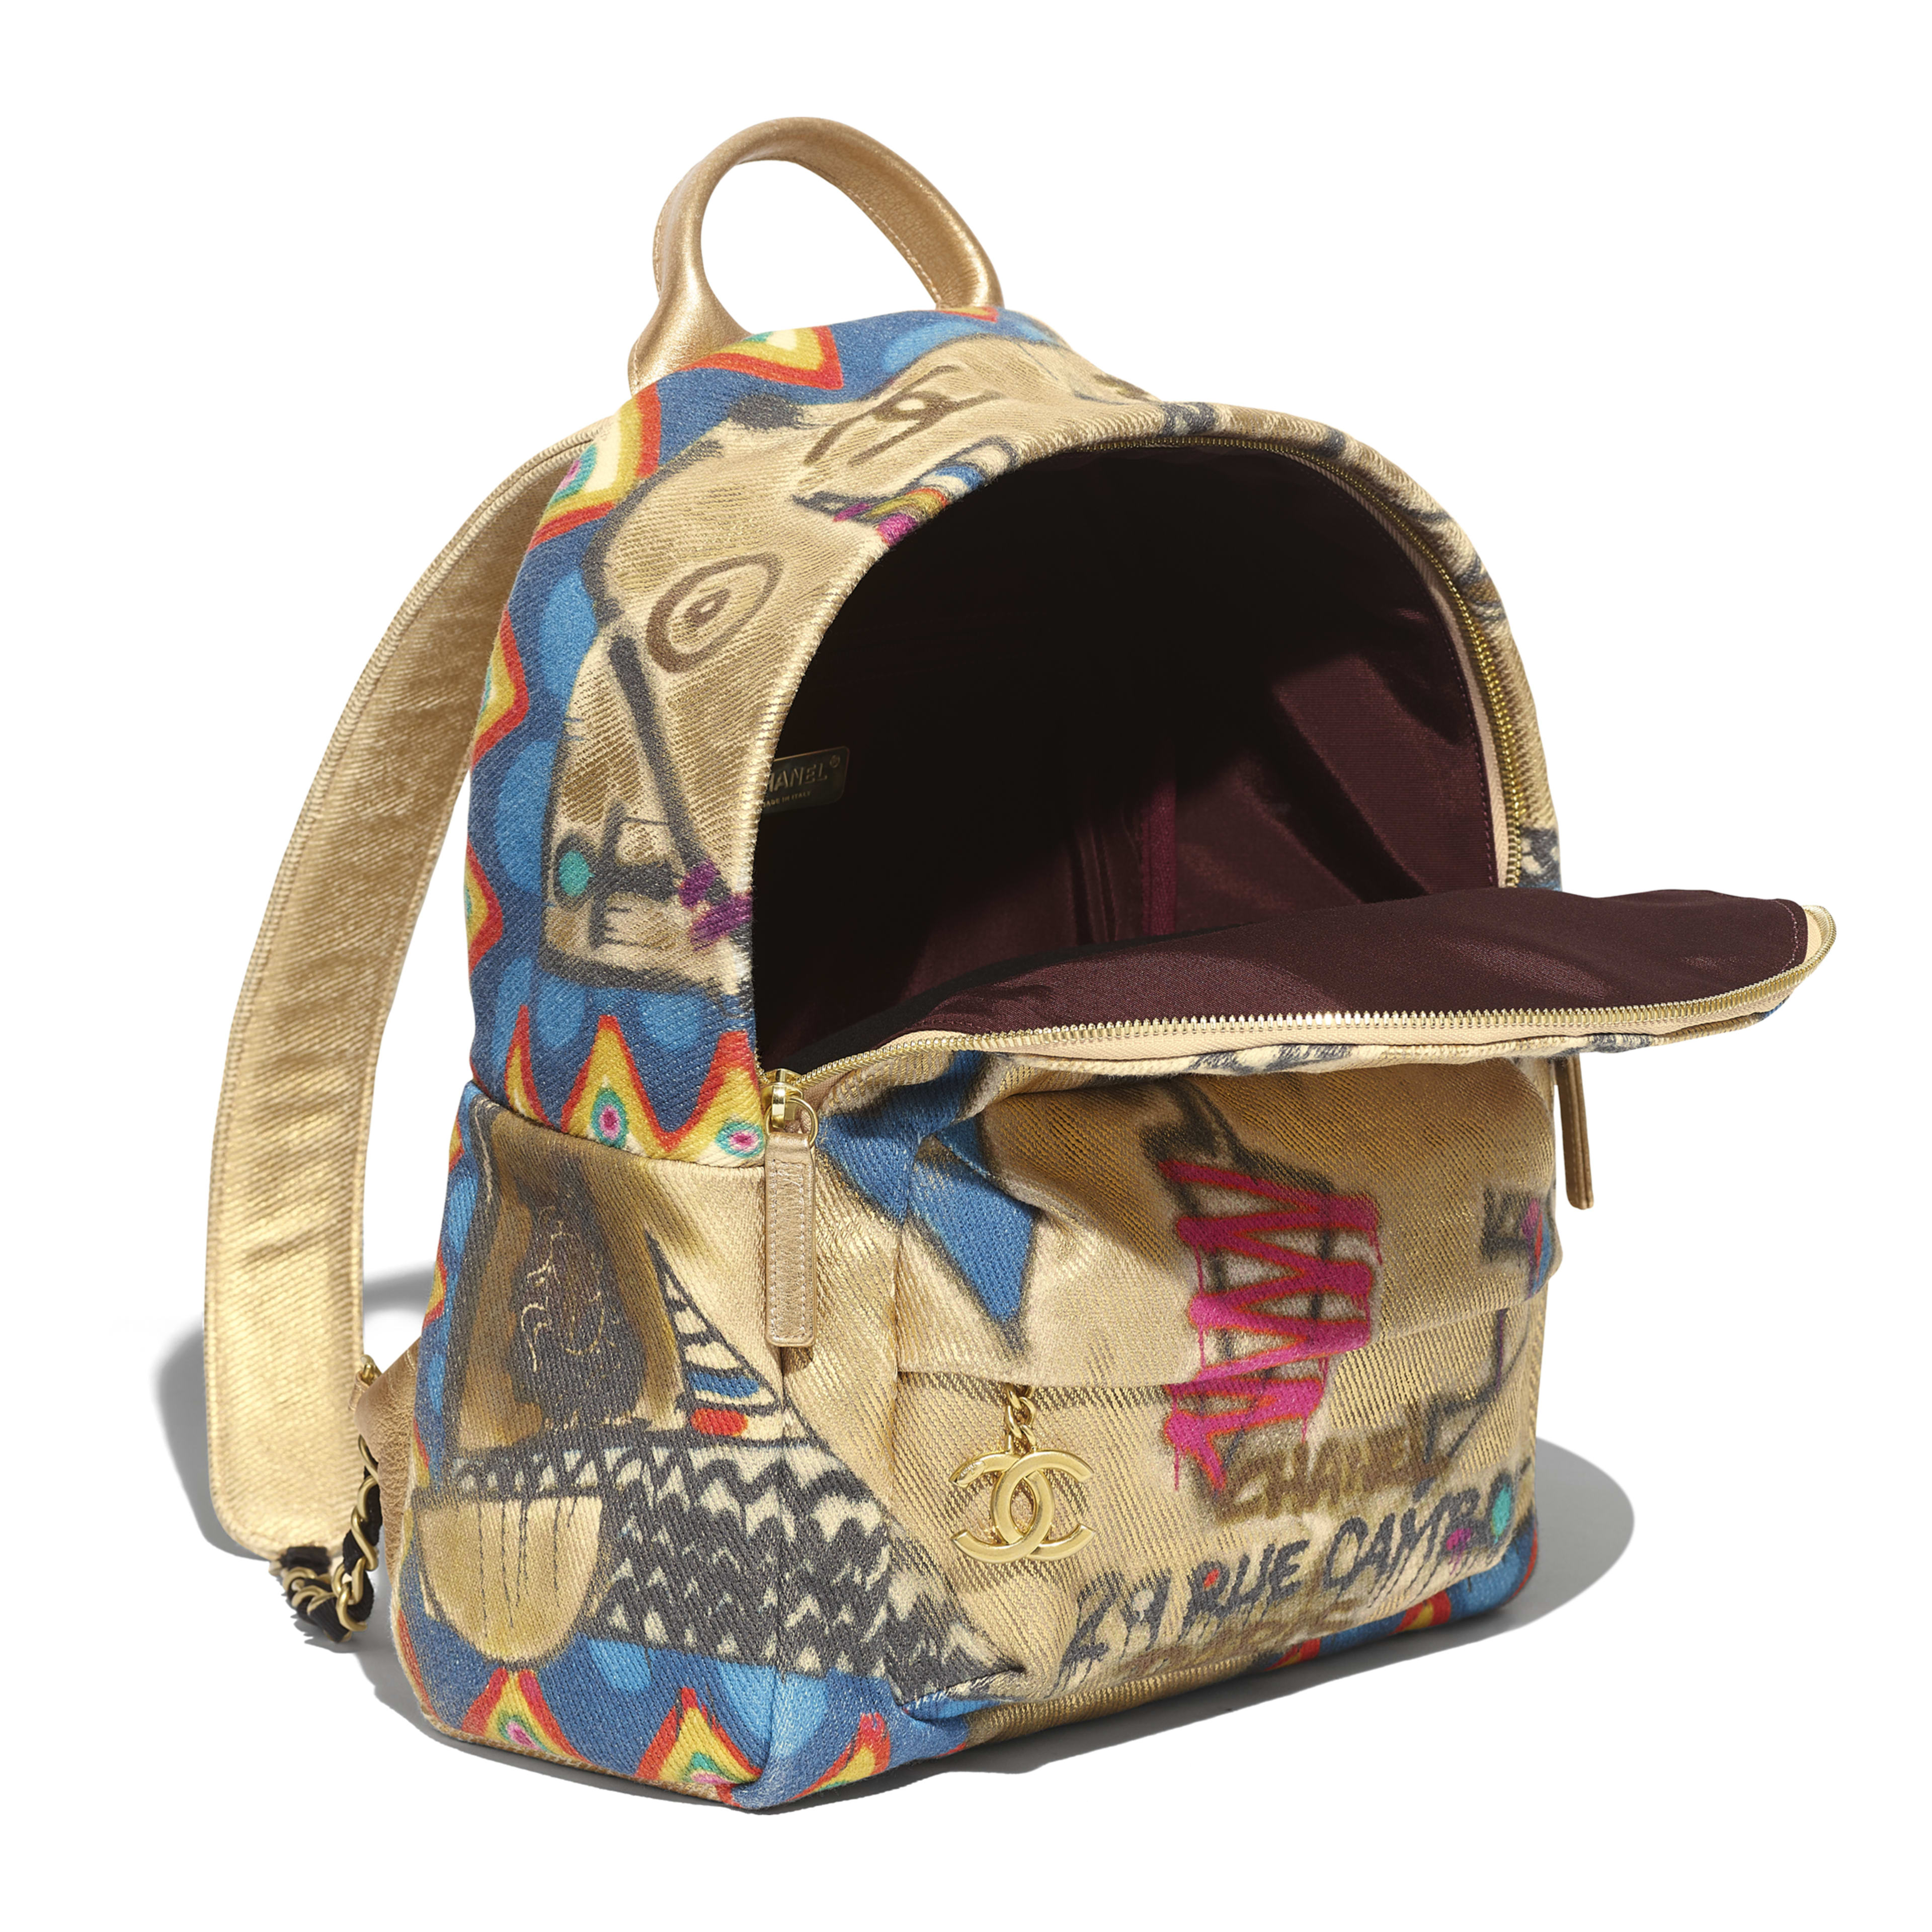 Backpack - Multicolor - Calfskin, Cotton & Gold-Tone Metal - Other view - see full sized version